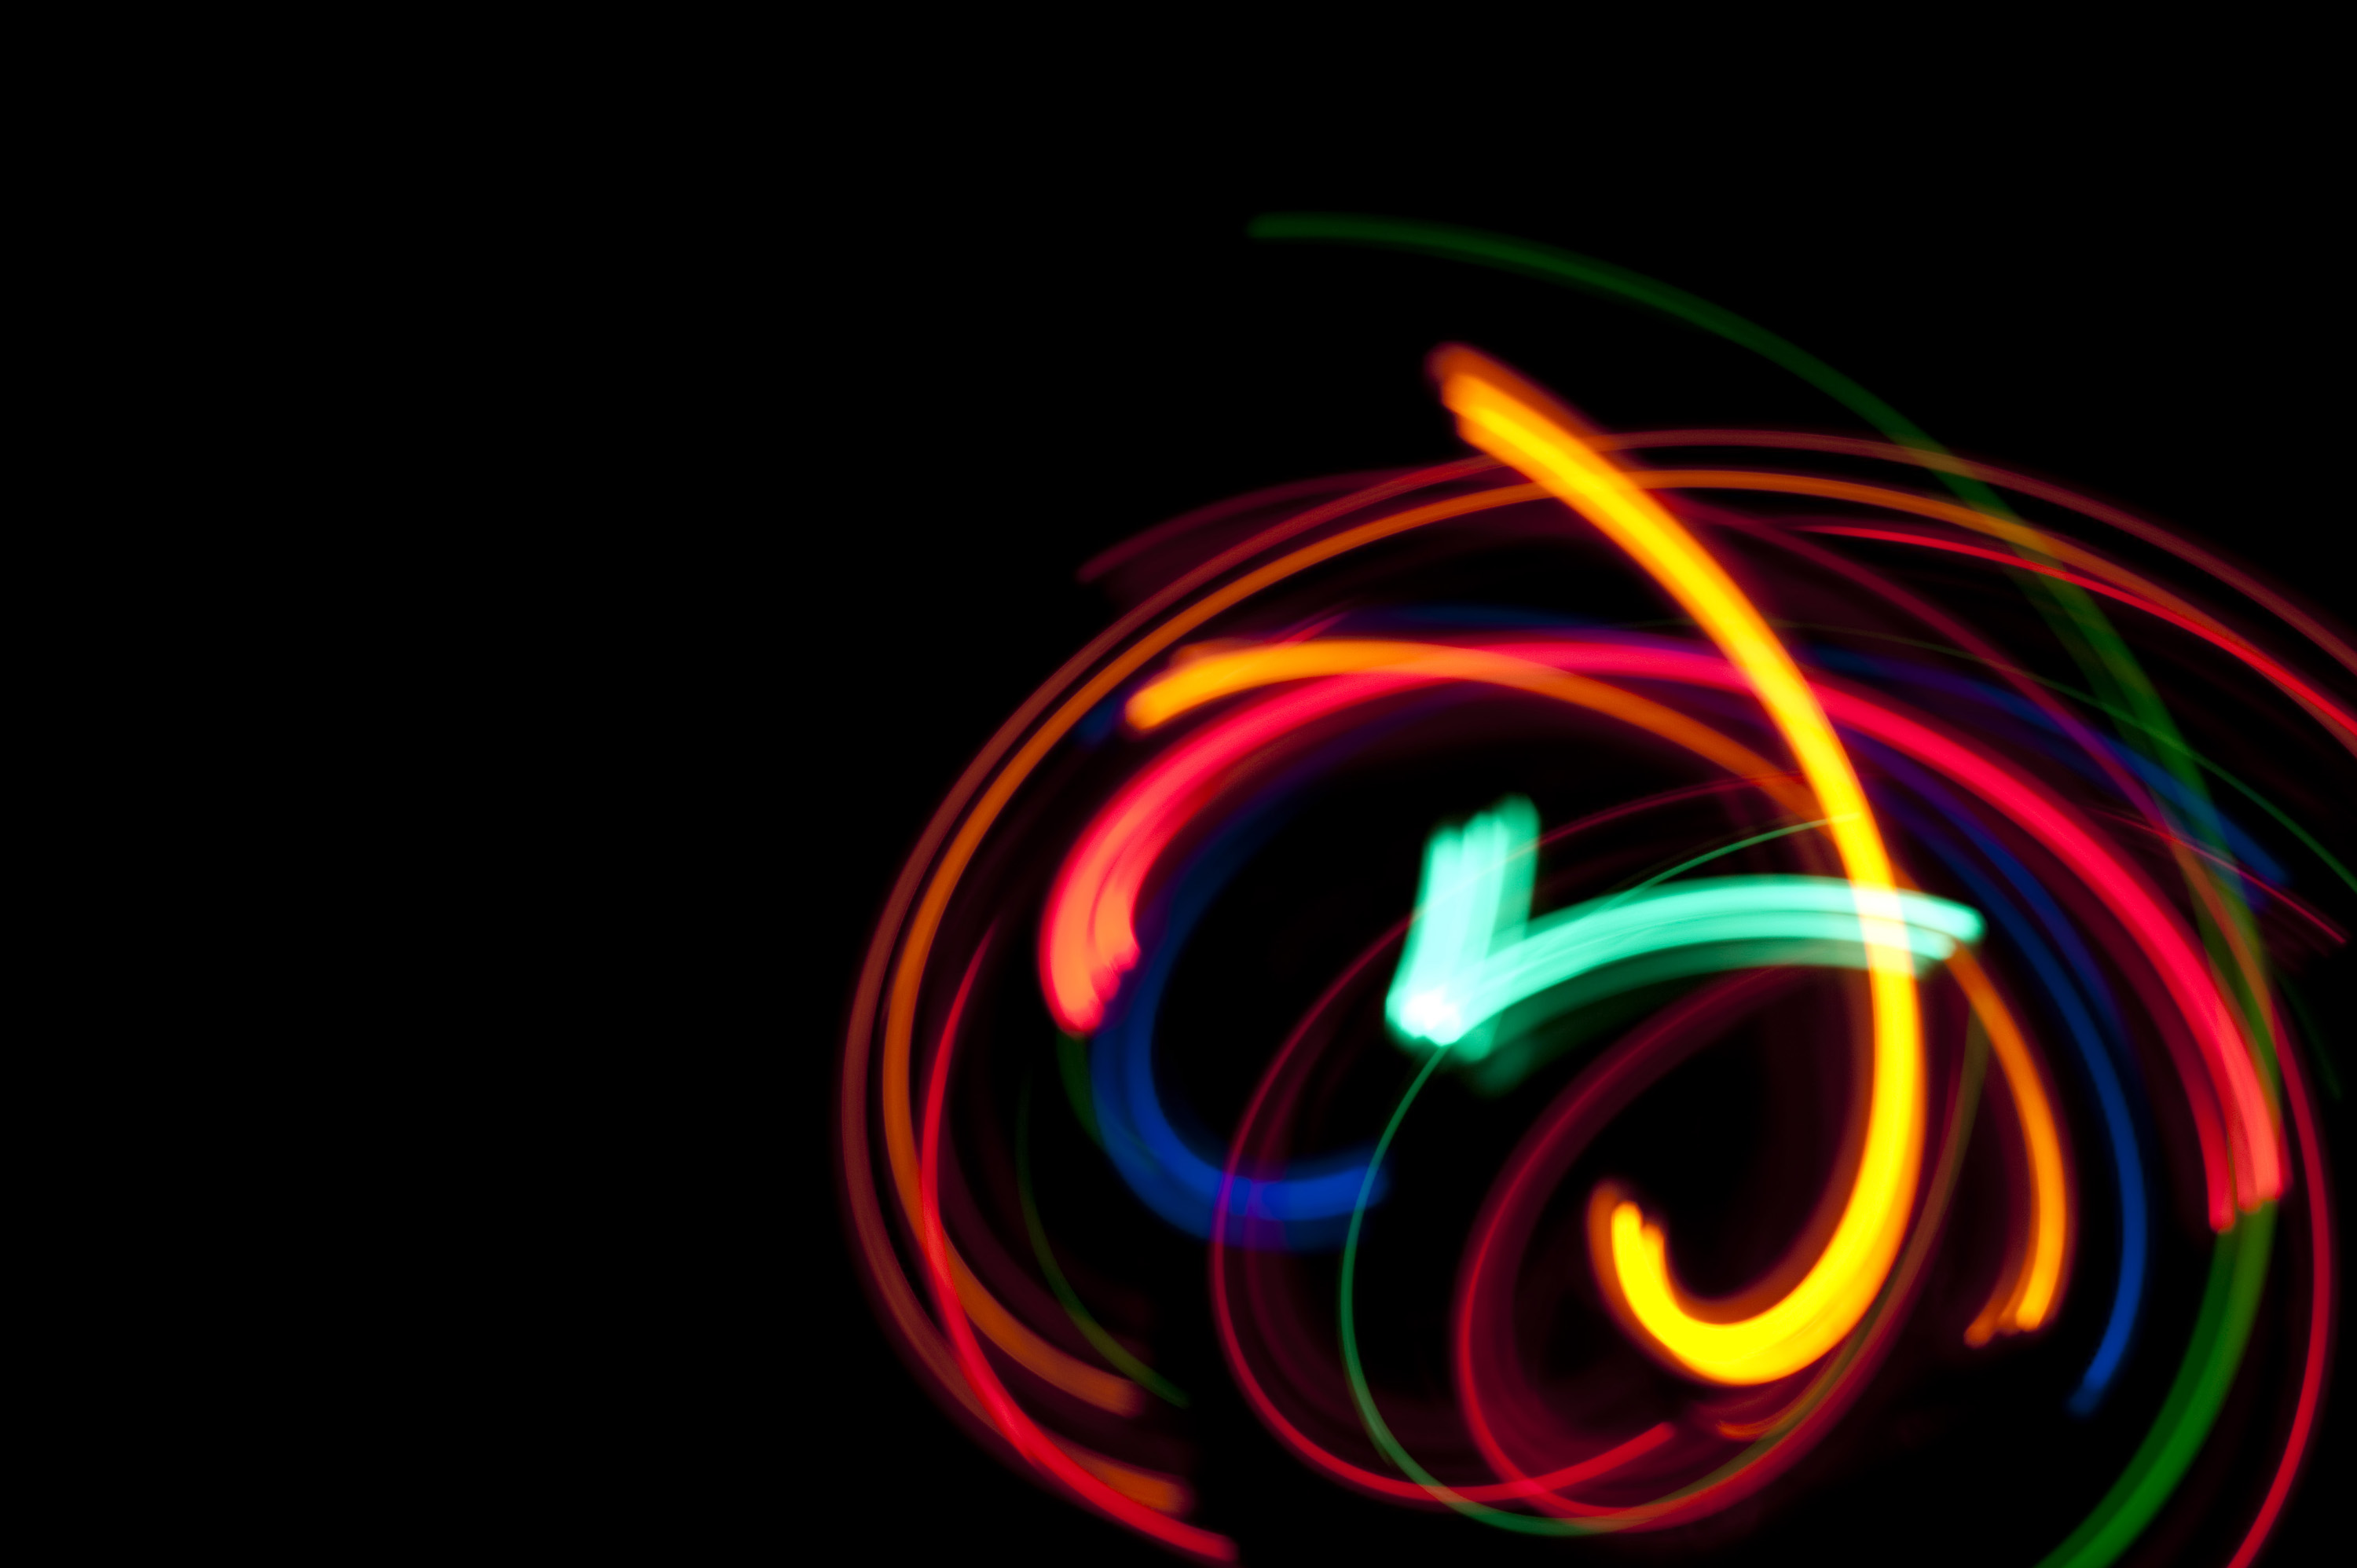 colorful lights in motion, long exposure image